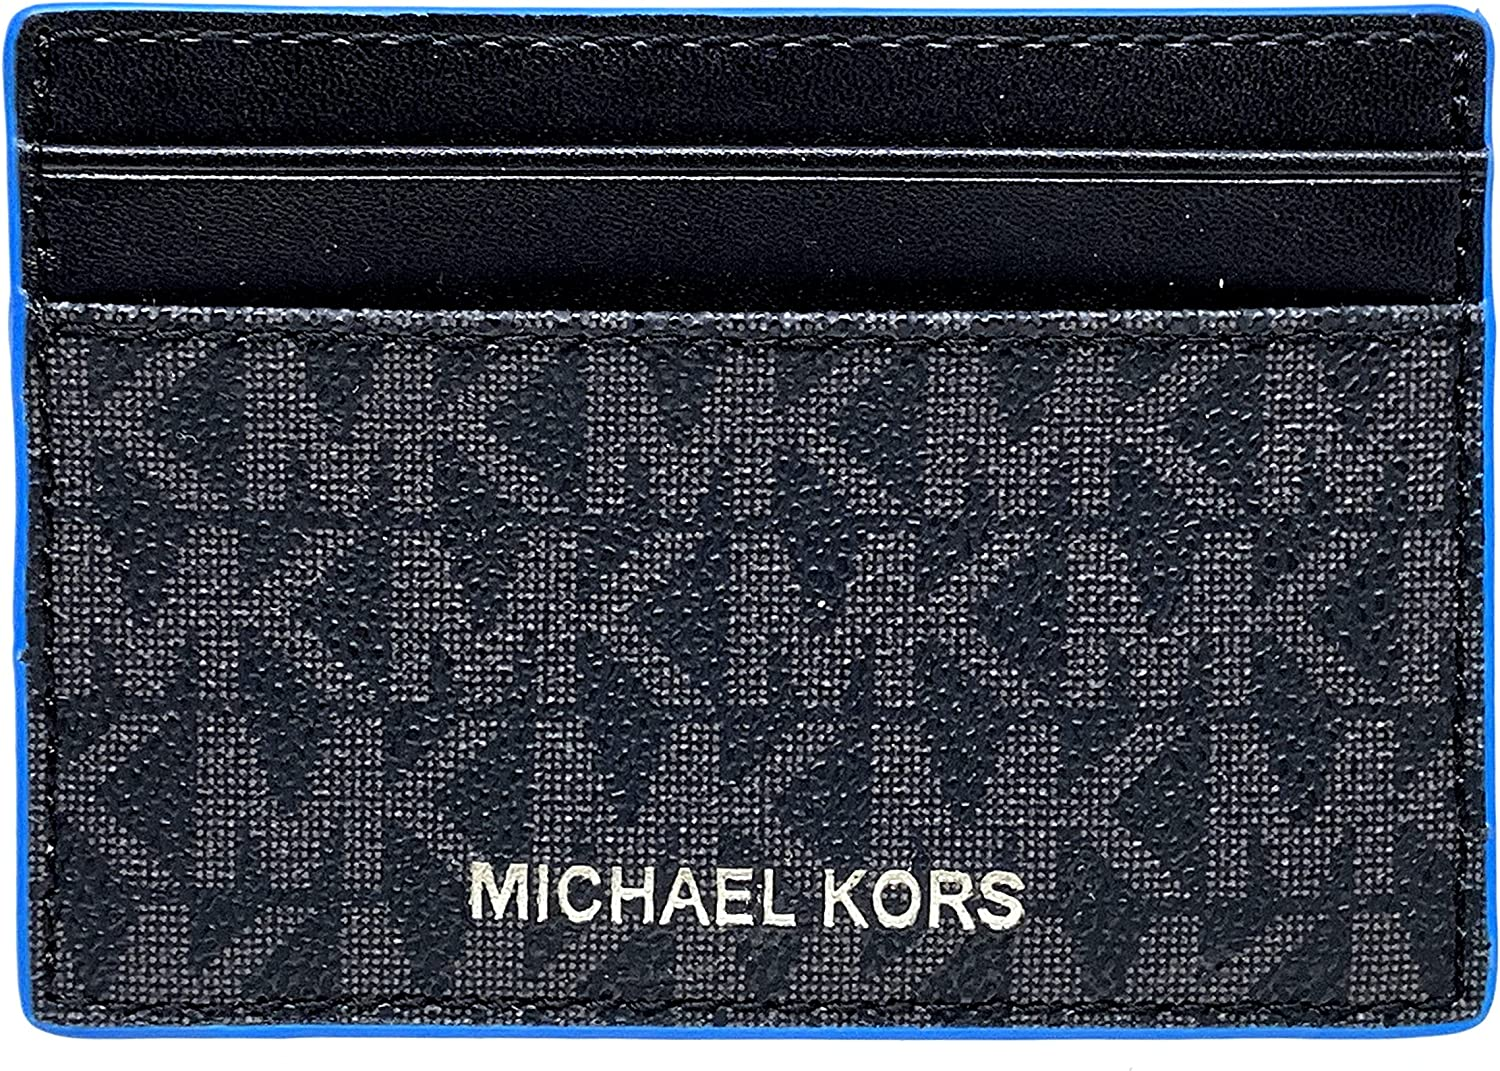 Michael Kors Gifting Card Case with - ID Pop Black Blue Max 44% OFF Brand Cheap Sale Venue